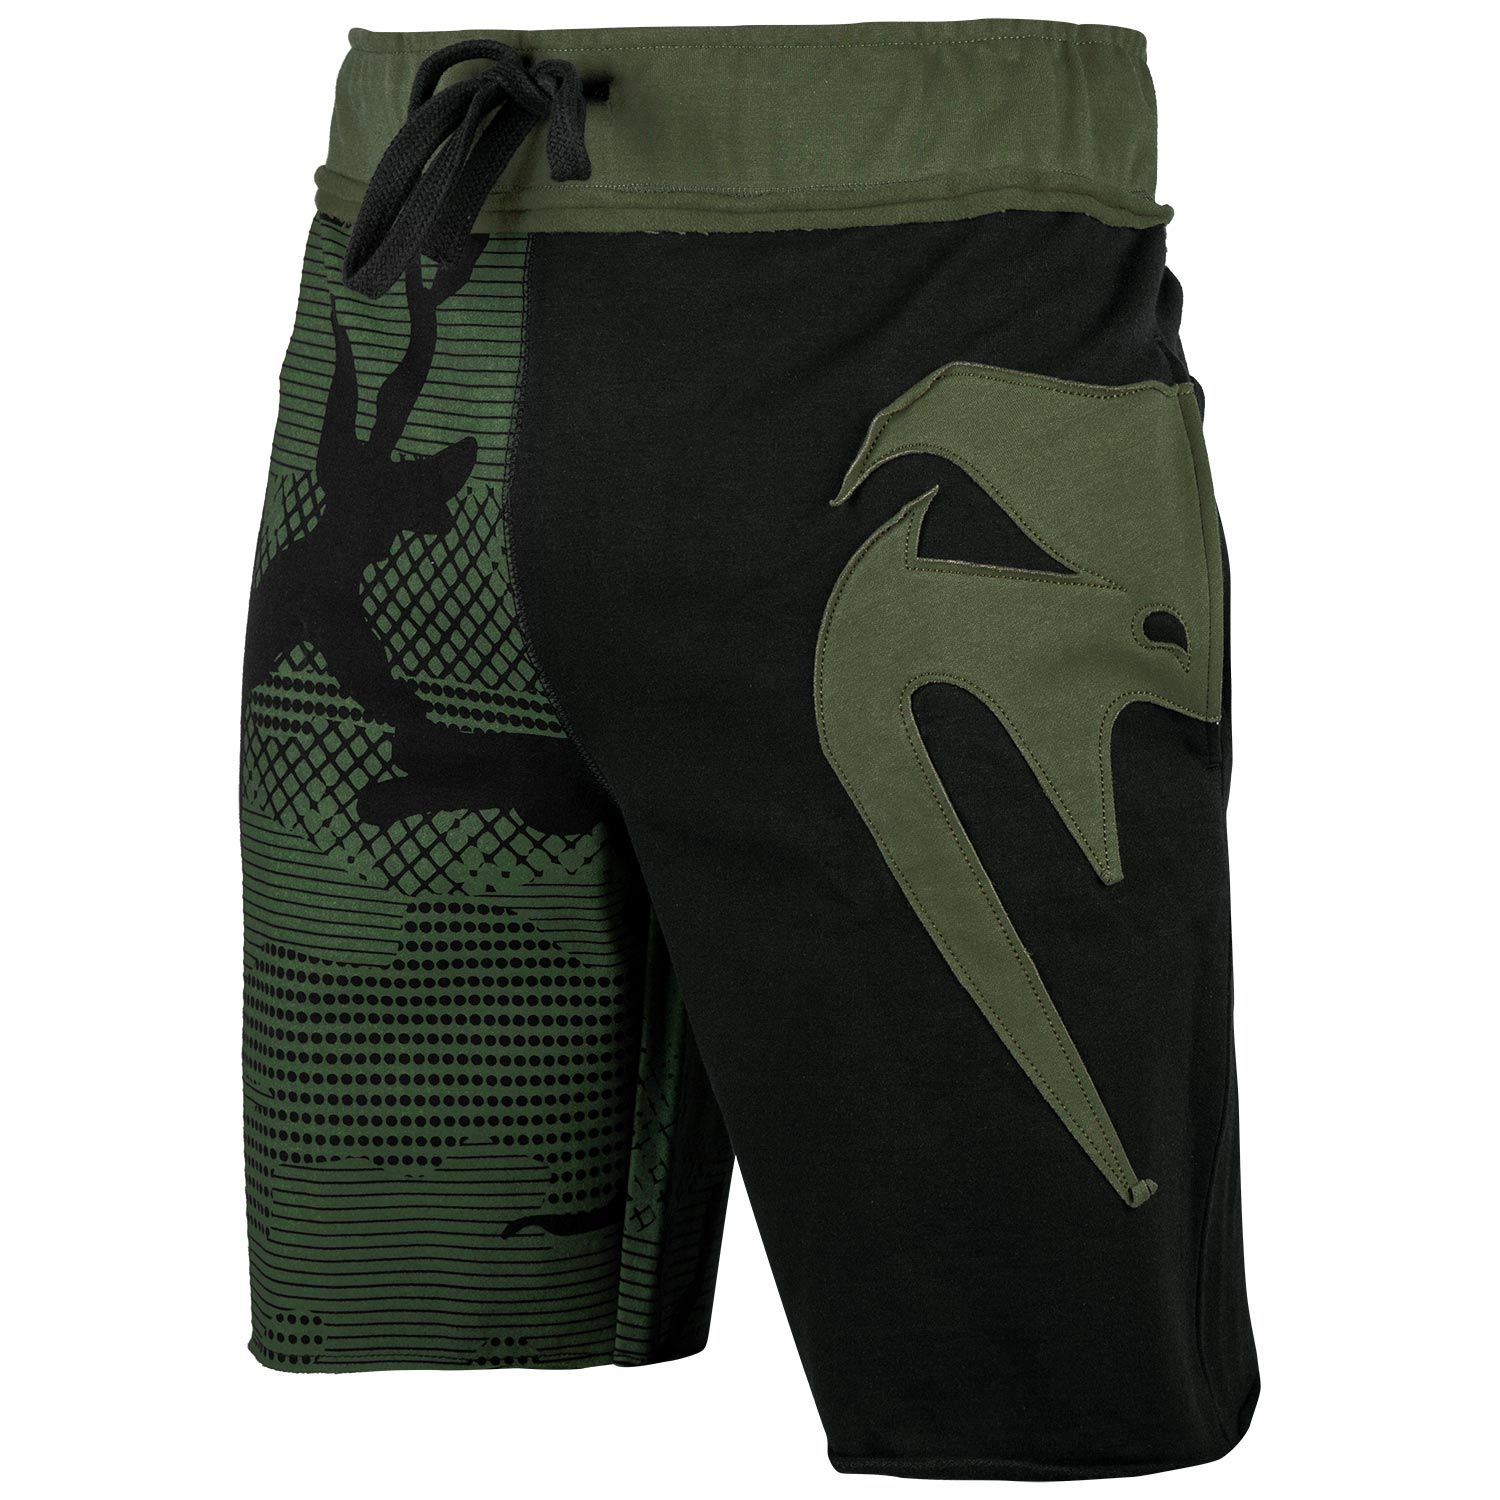 Шорты Venum Assault Cotton Shorts Khaki/Black